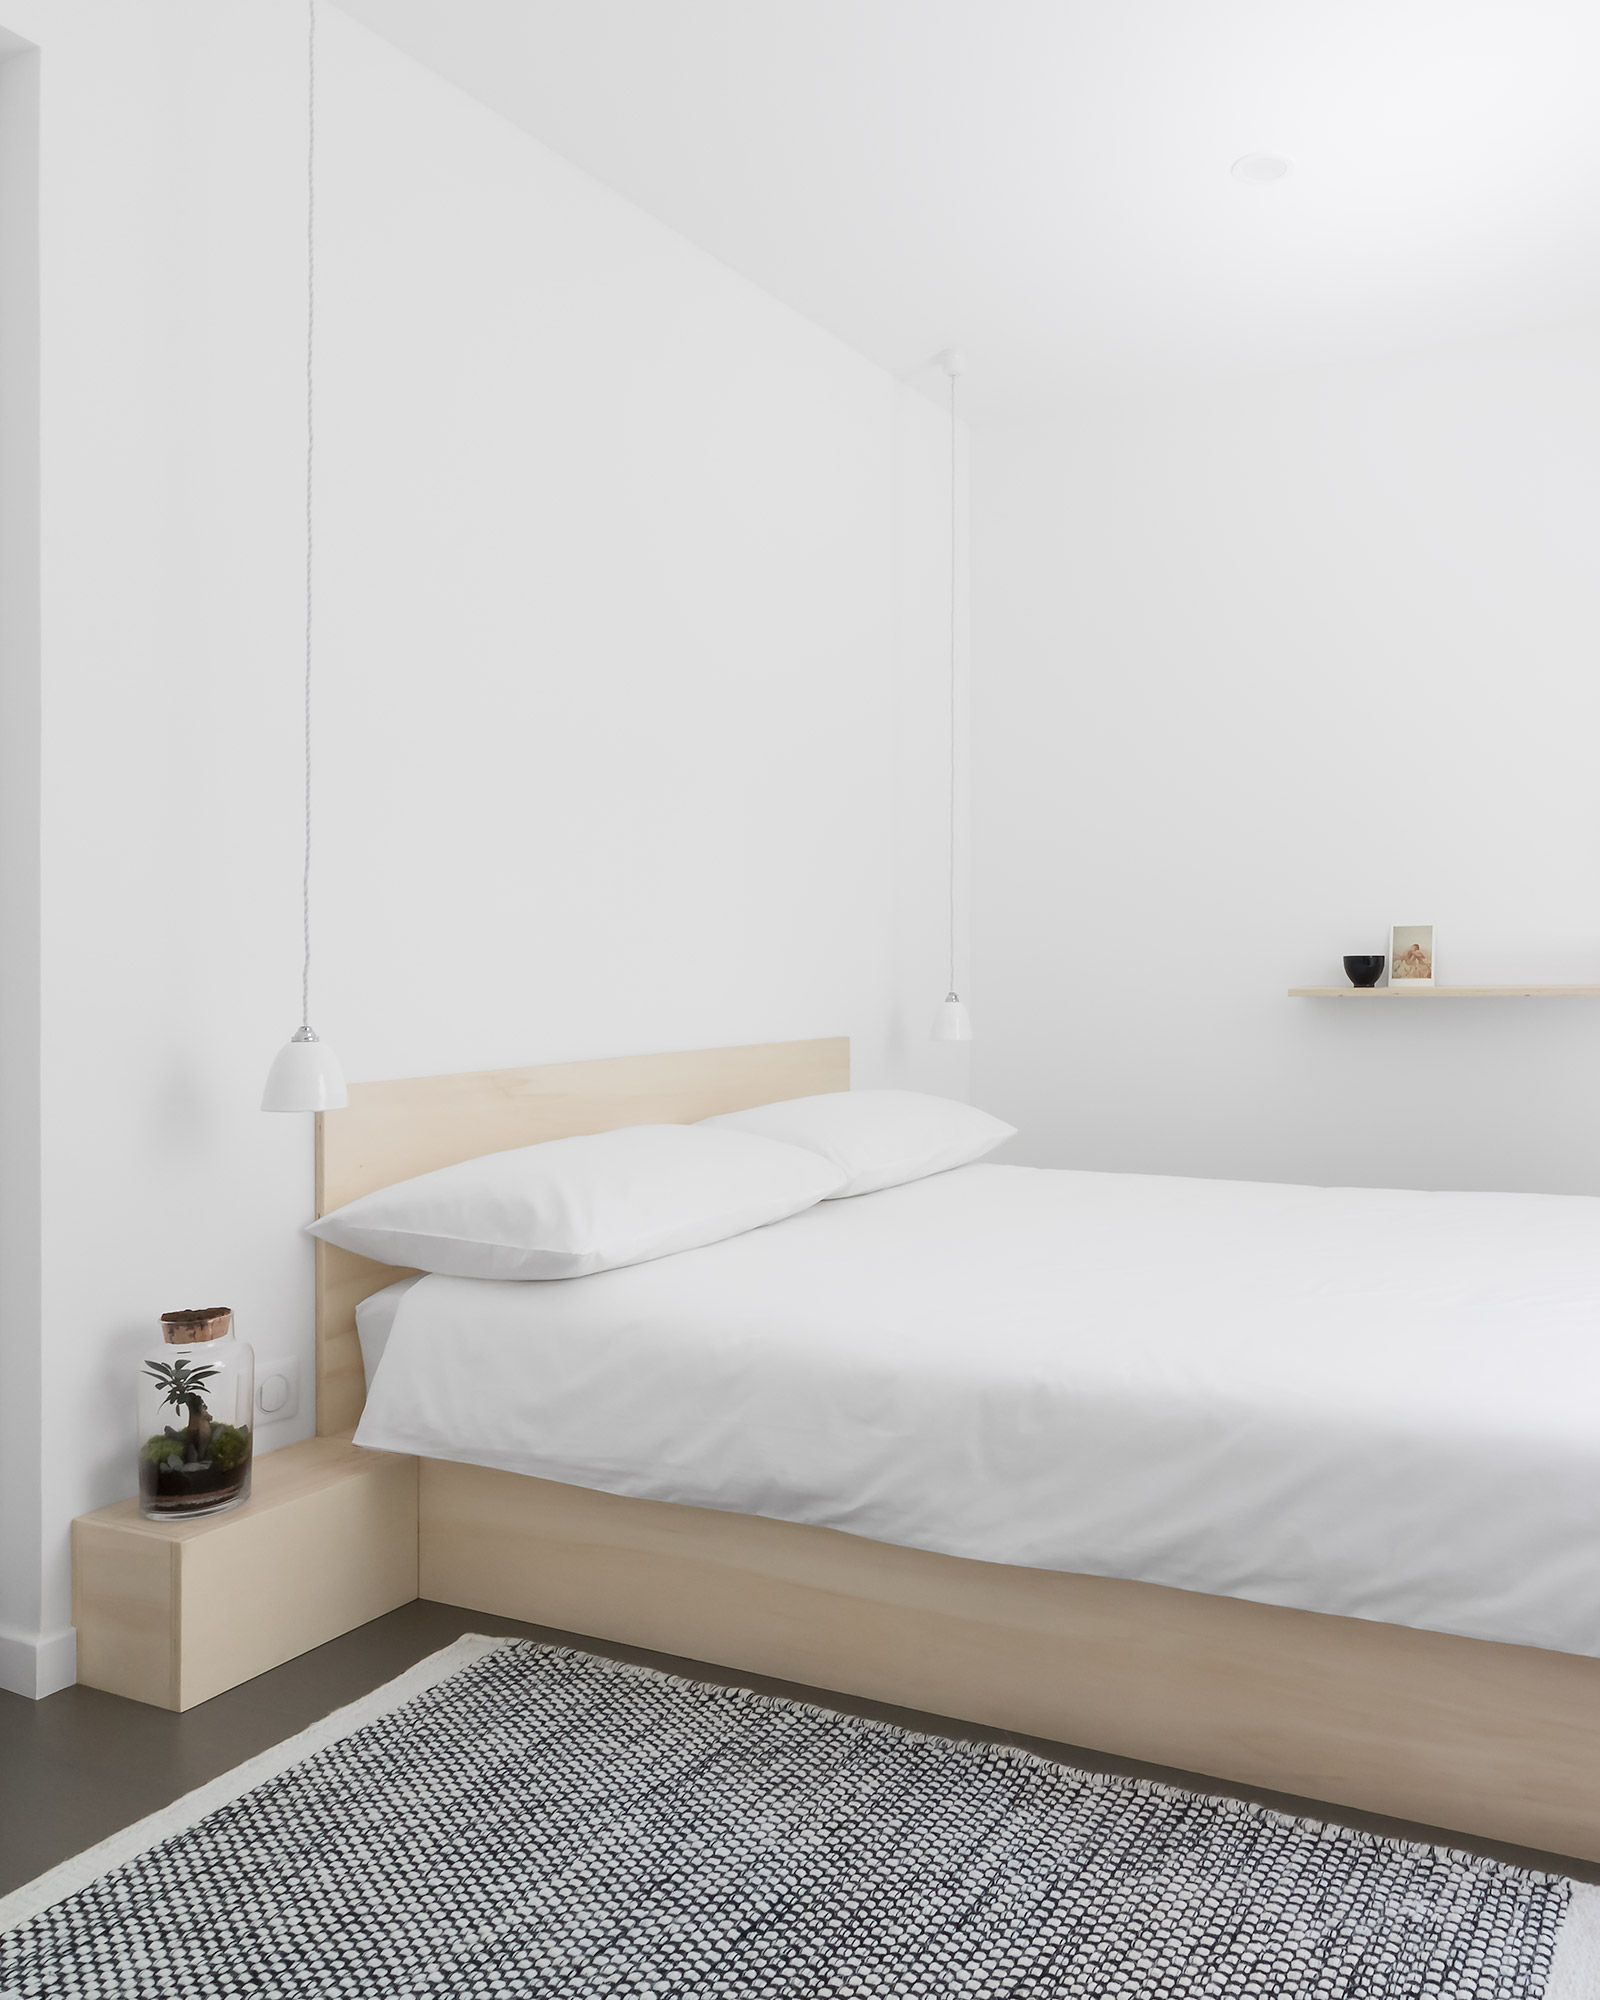 Minimal, modern Japanese style, white bedroom with low plywood bed and opaque glass pendant lights suspended on grey fabric cord